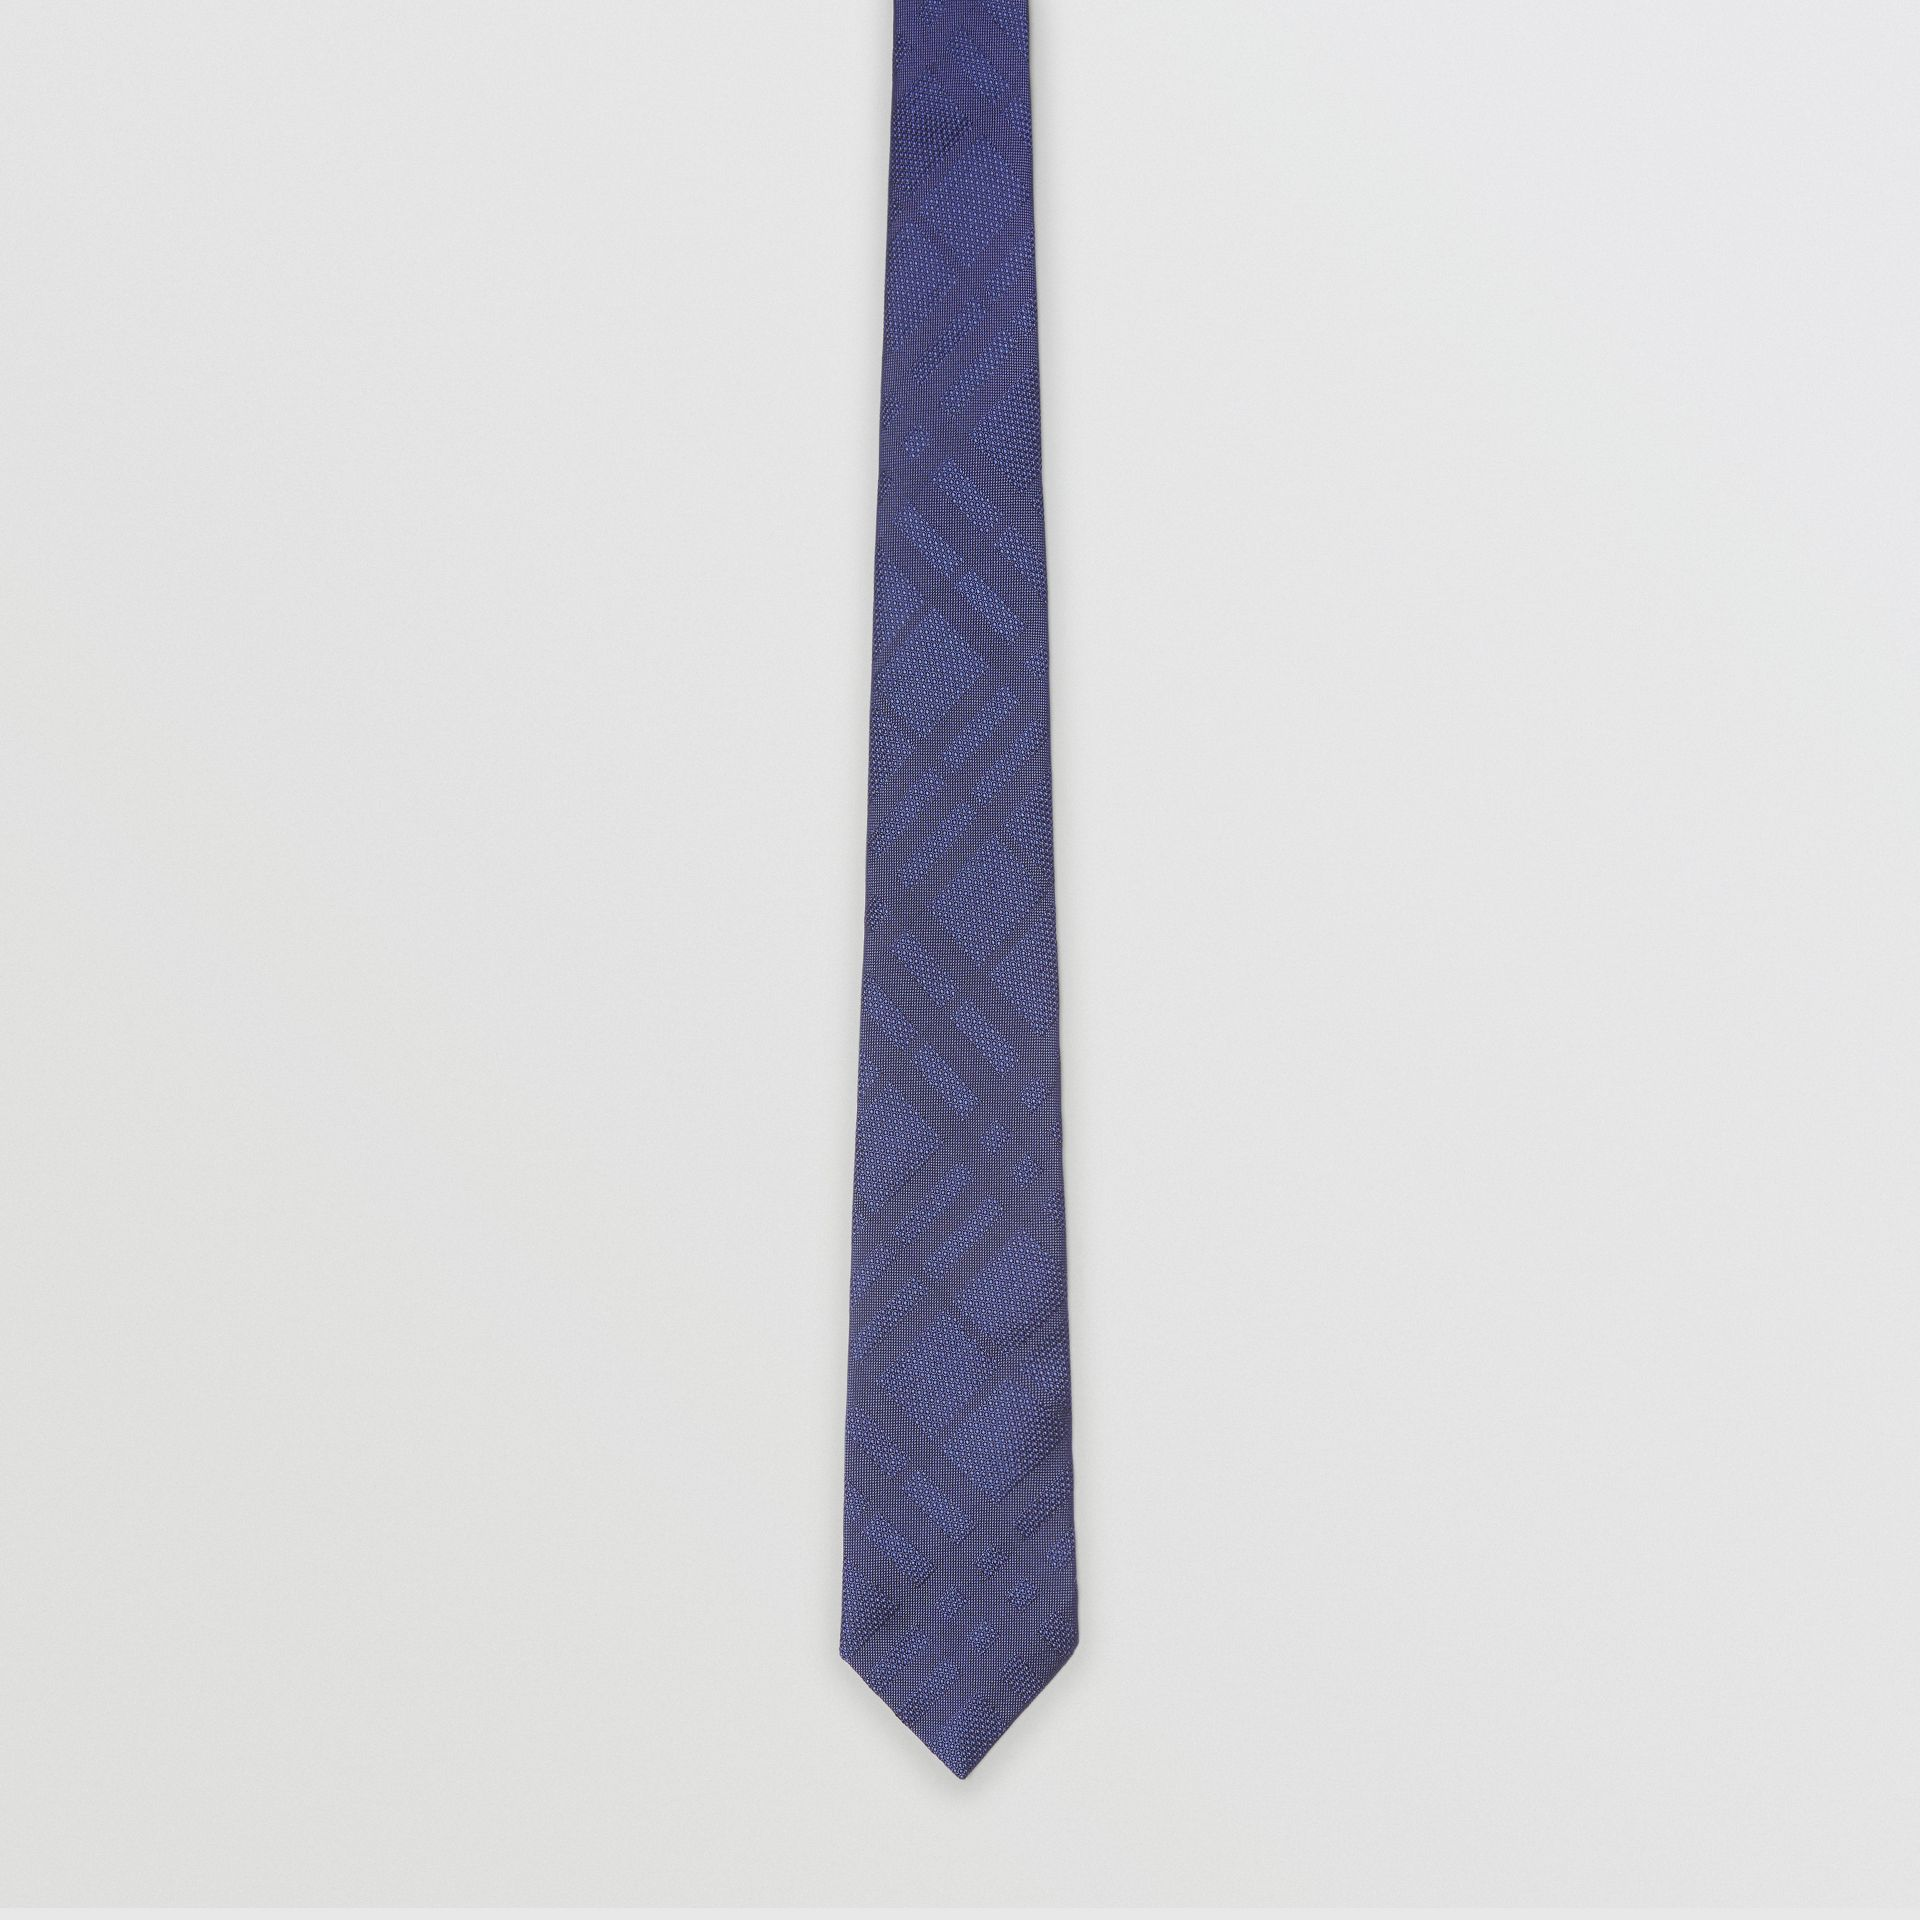 Classic Cut Check Silk Jacquard Tie in Blue - Men | Burberry Singapore - gallery image 3